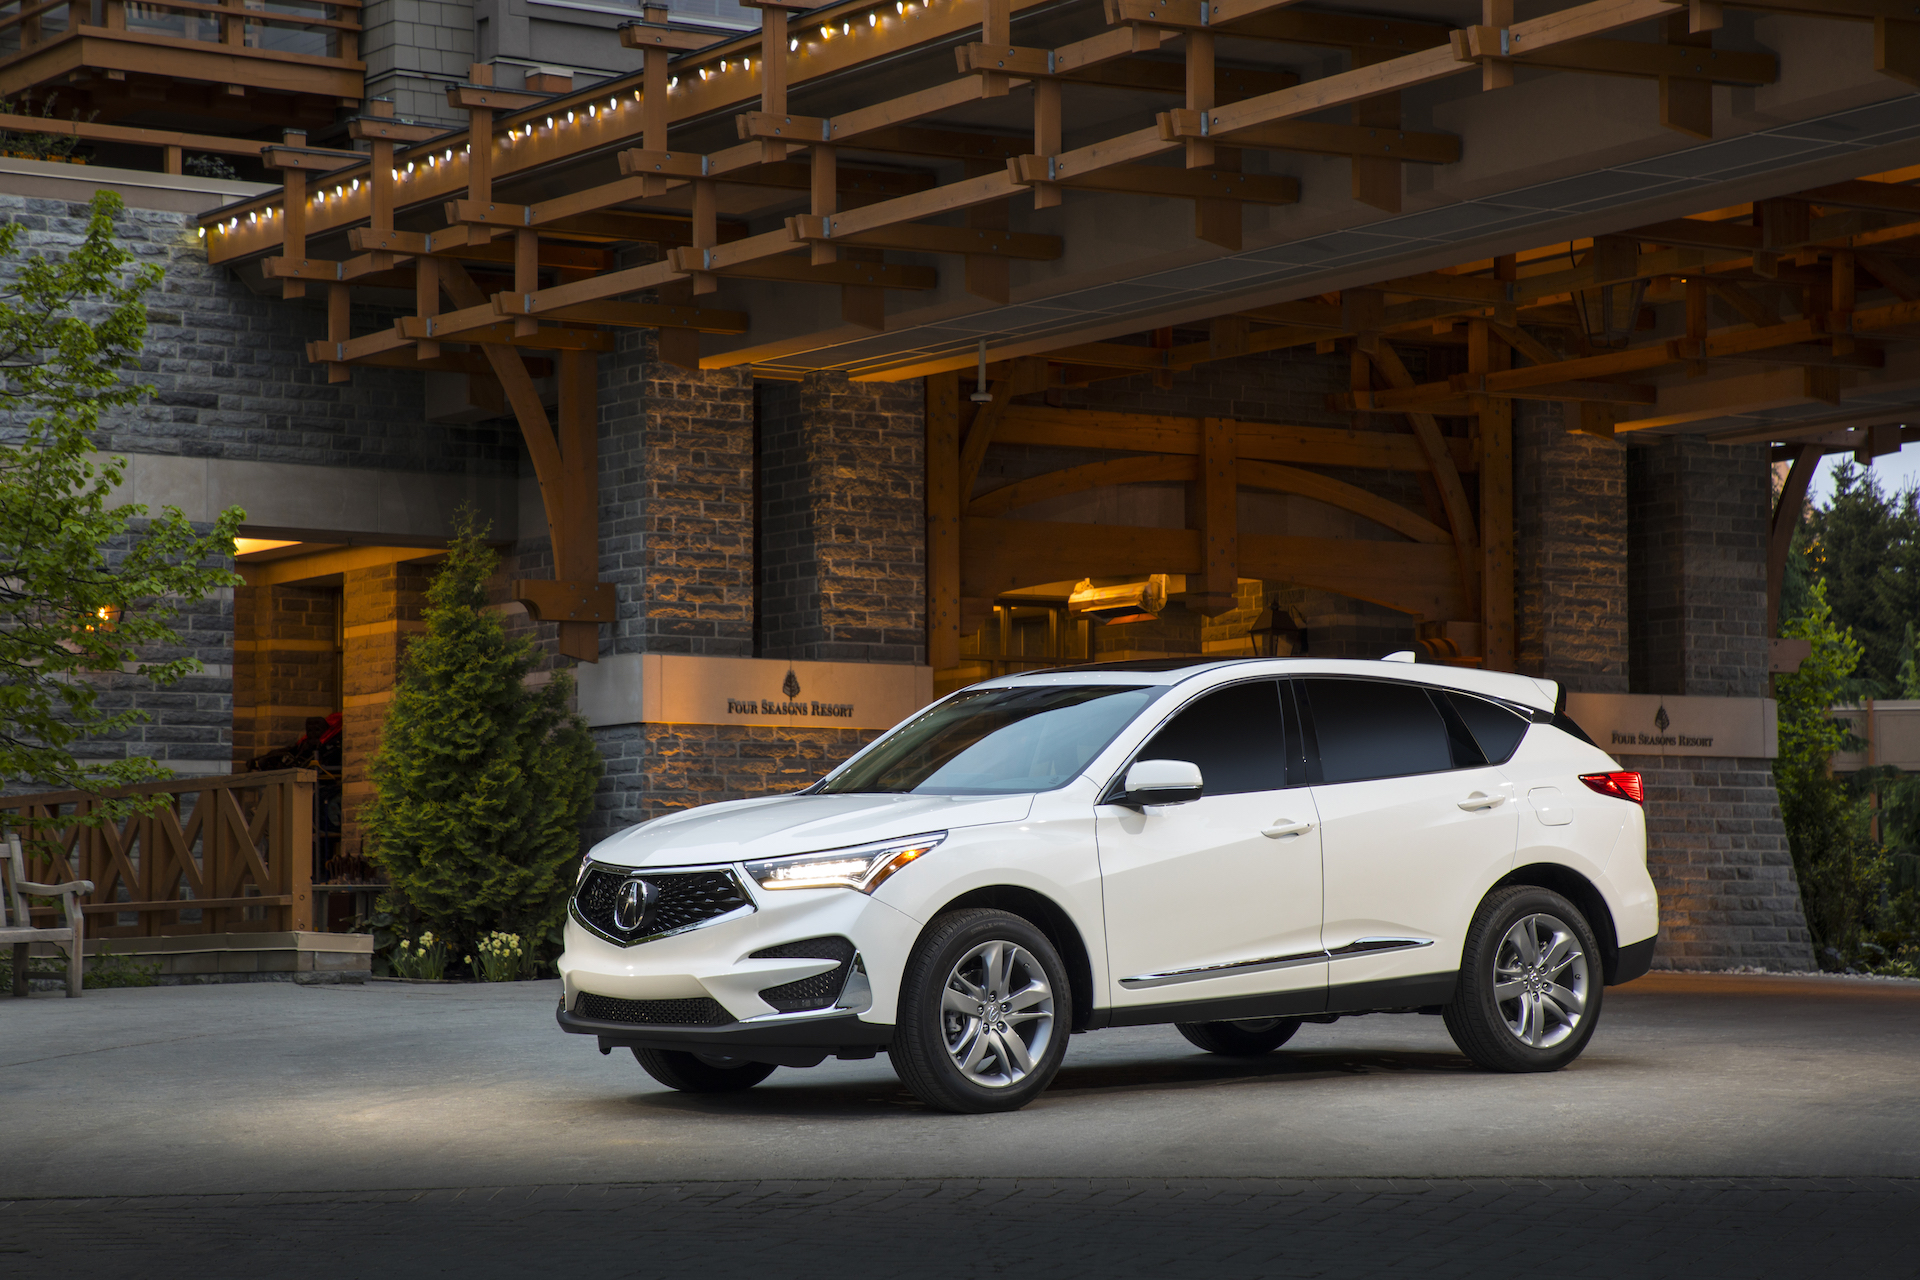 2020 Acura Rdx Crossover Suv Launches For 38 595